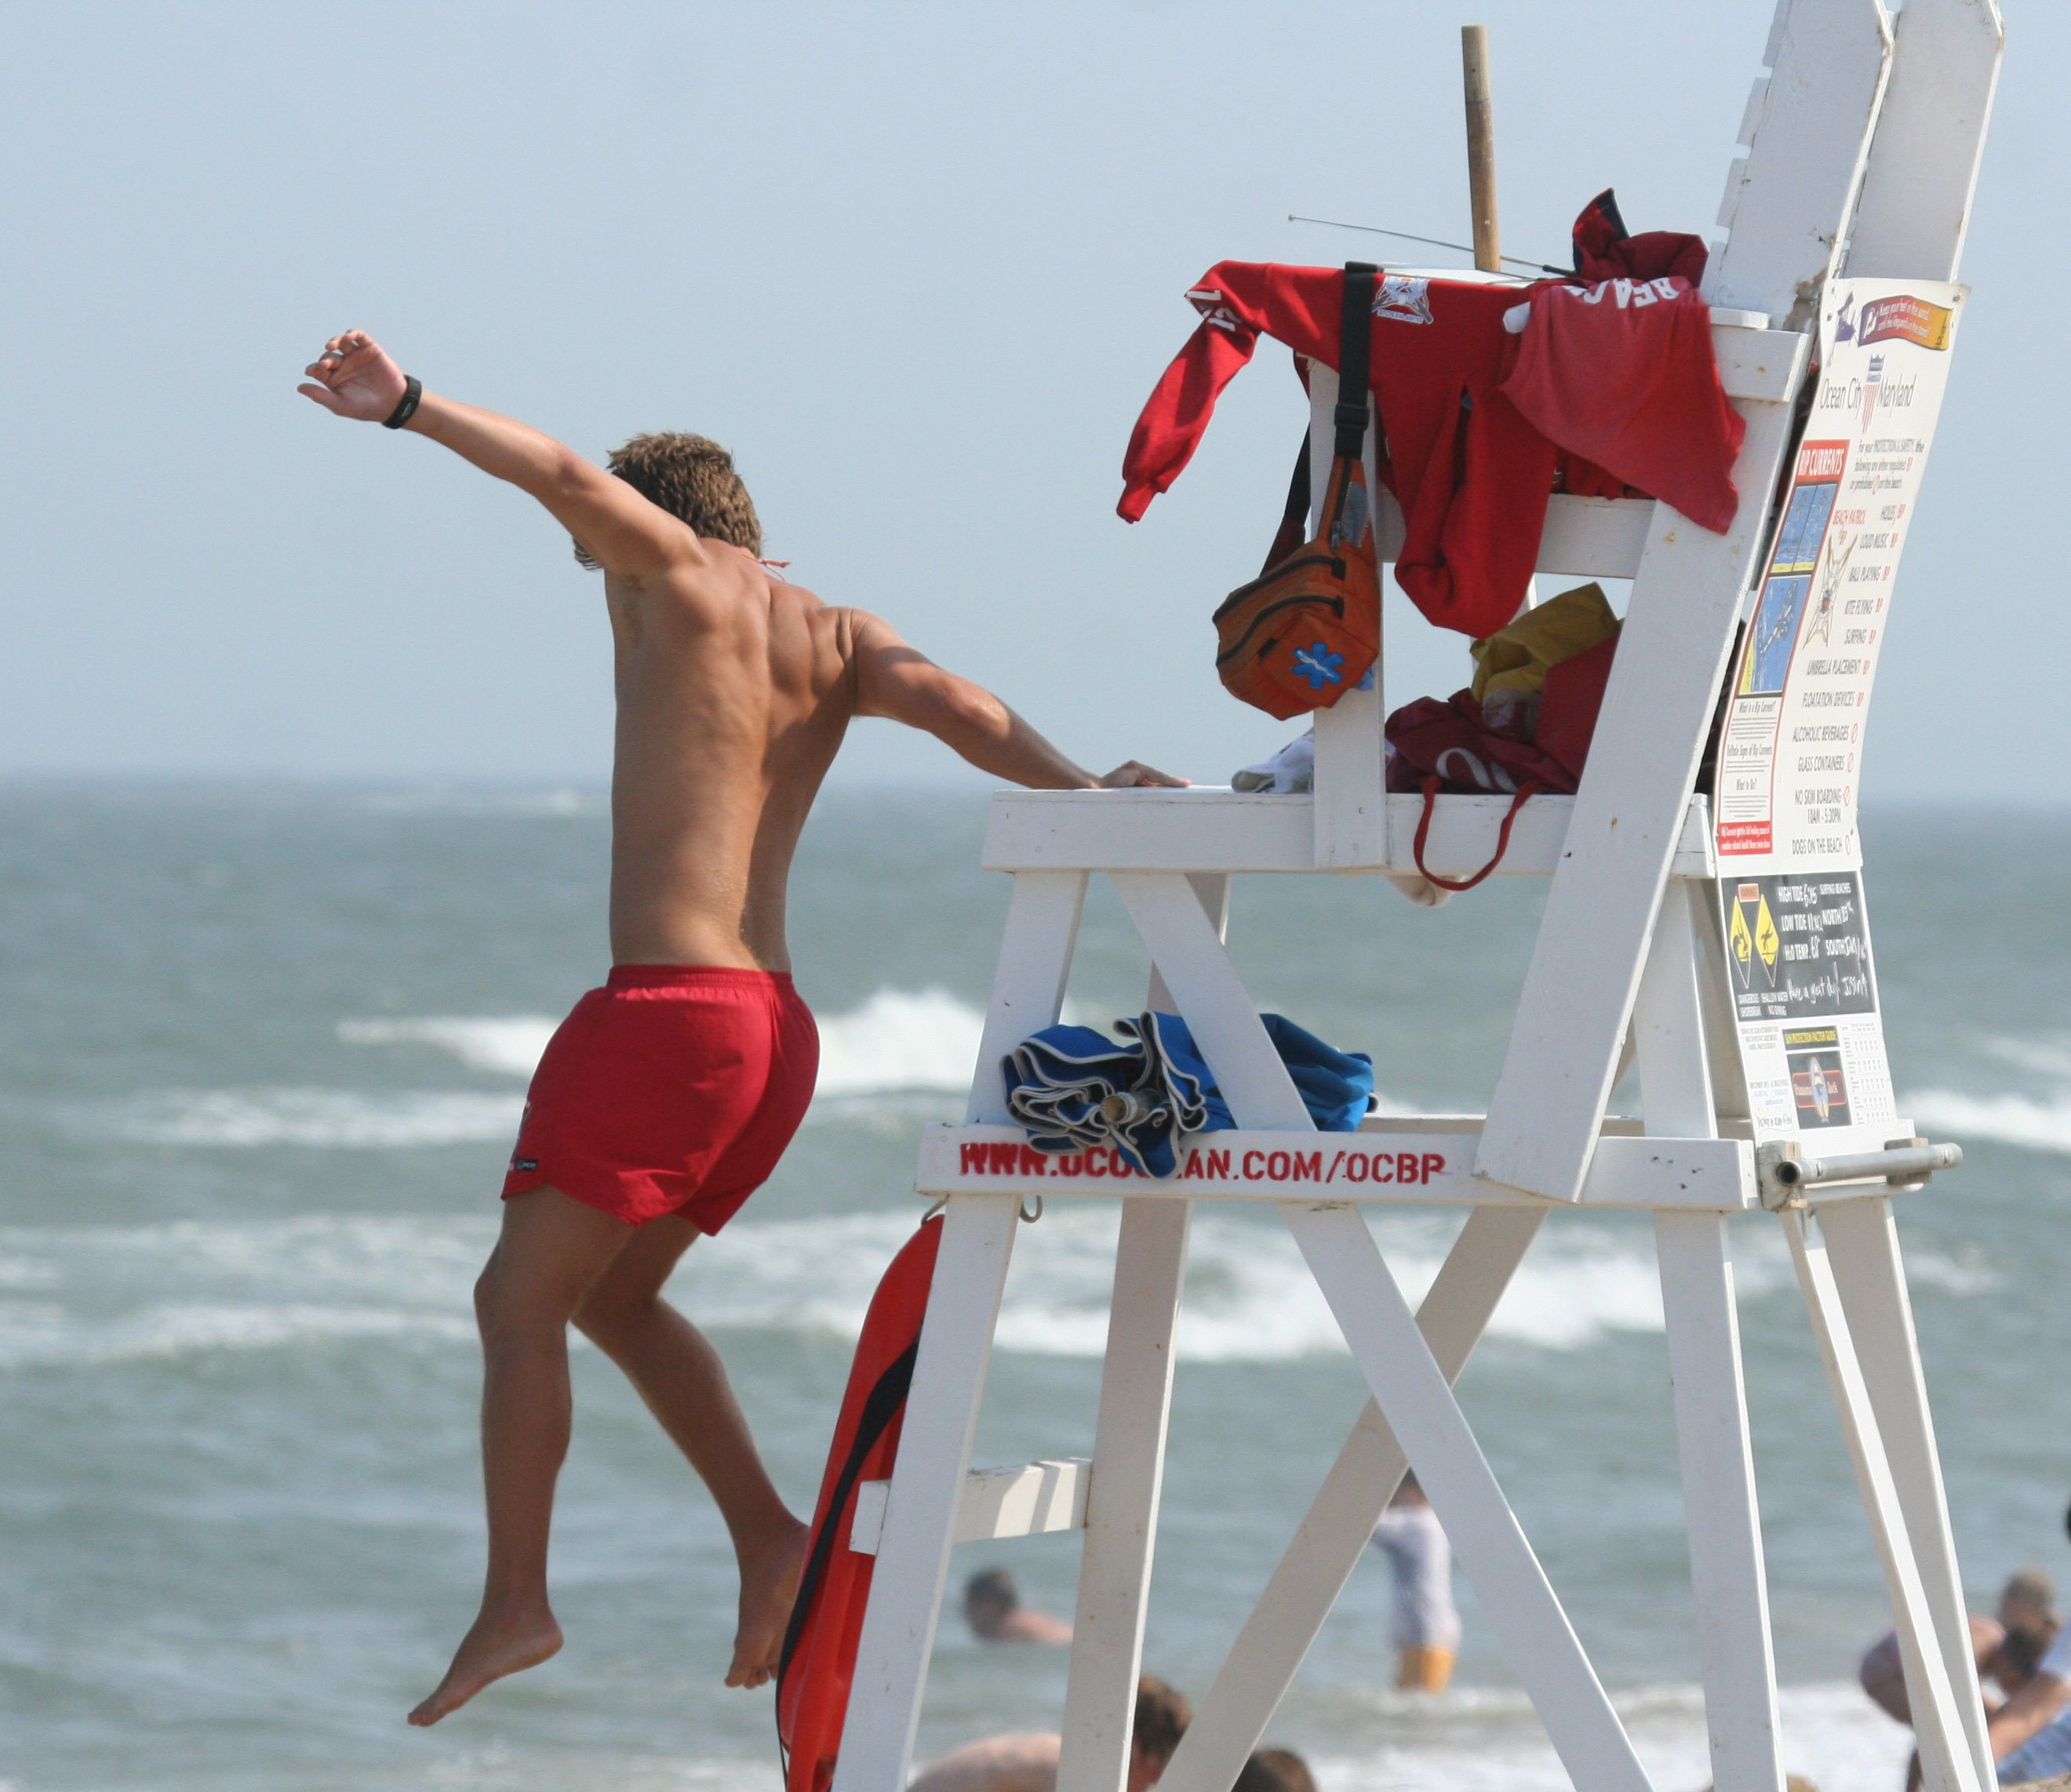 lifeguardjumpingintoactionoceancityjune272007.jpg